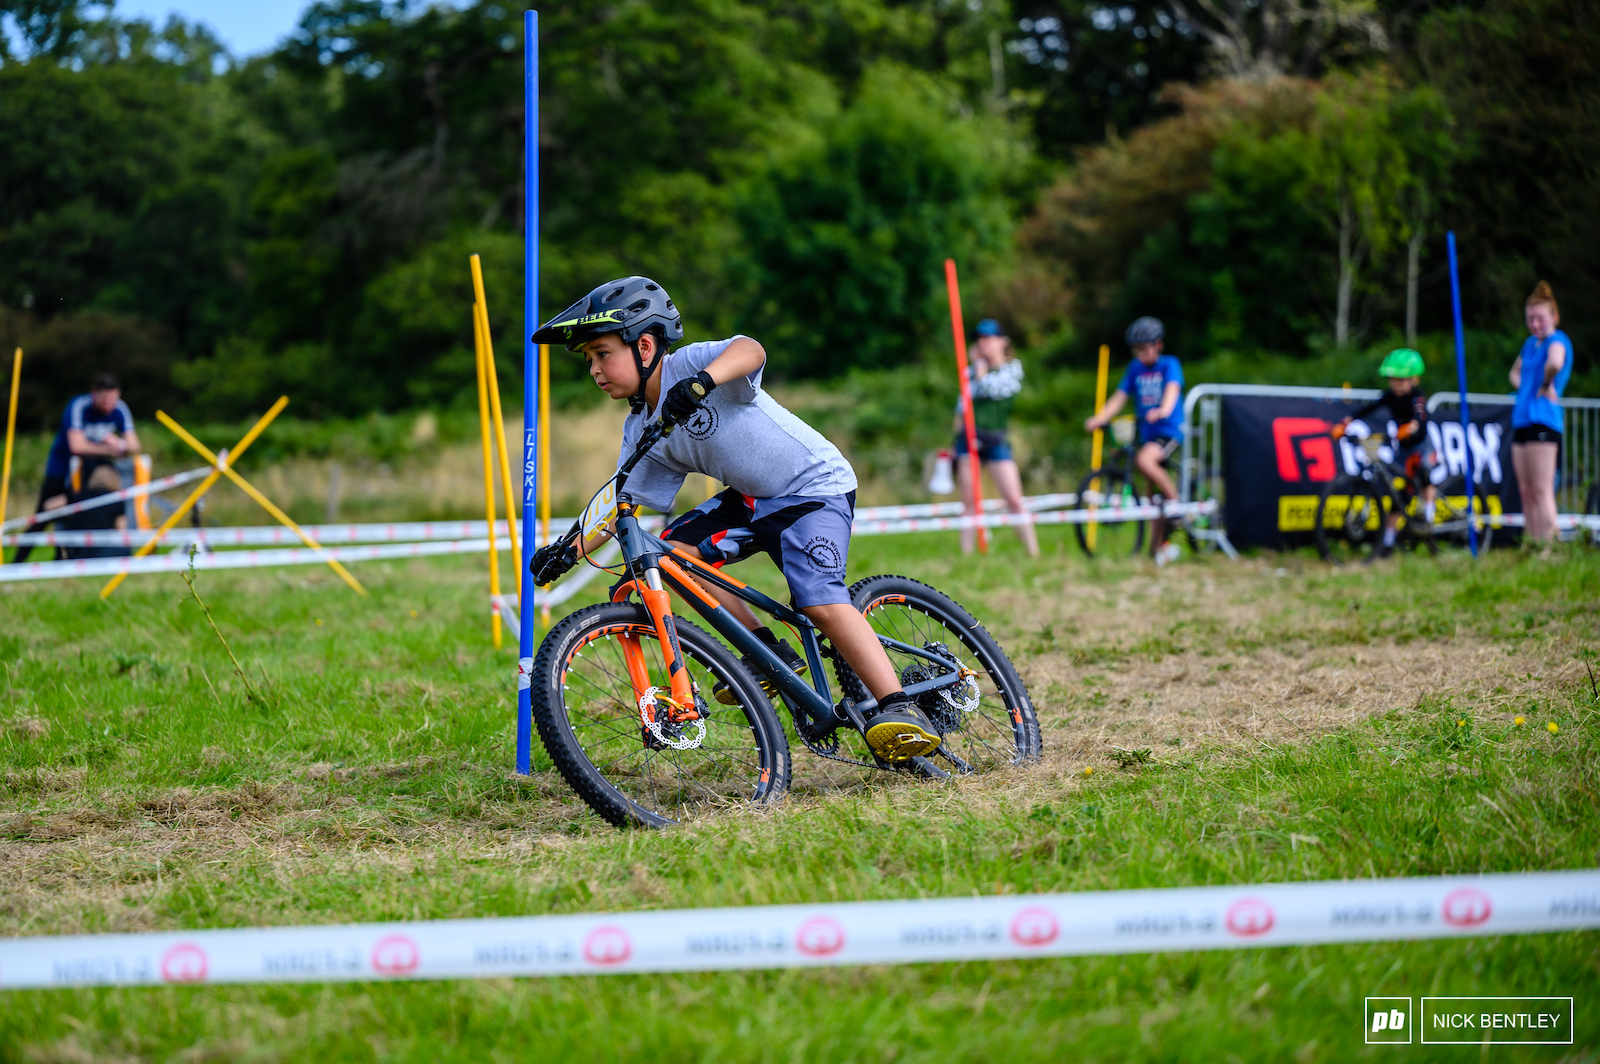 These young riders are not scared to lean in on these grass tracks